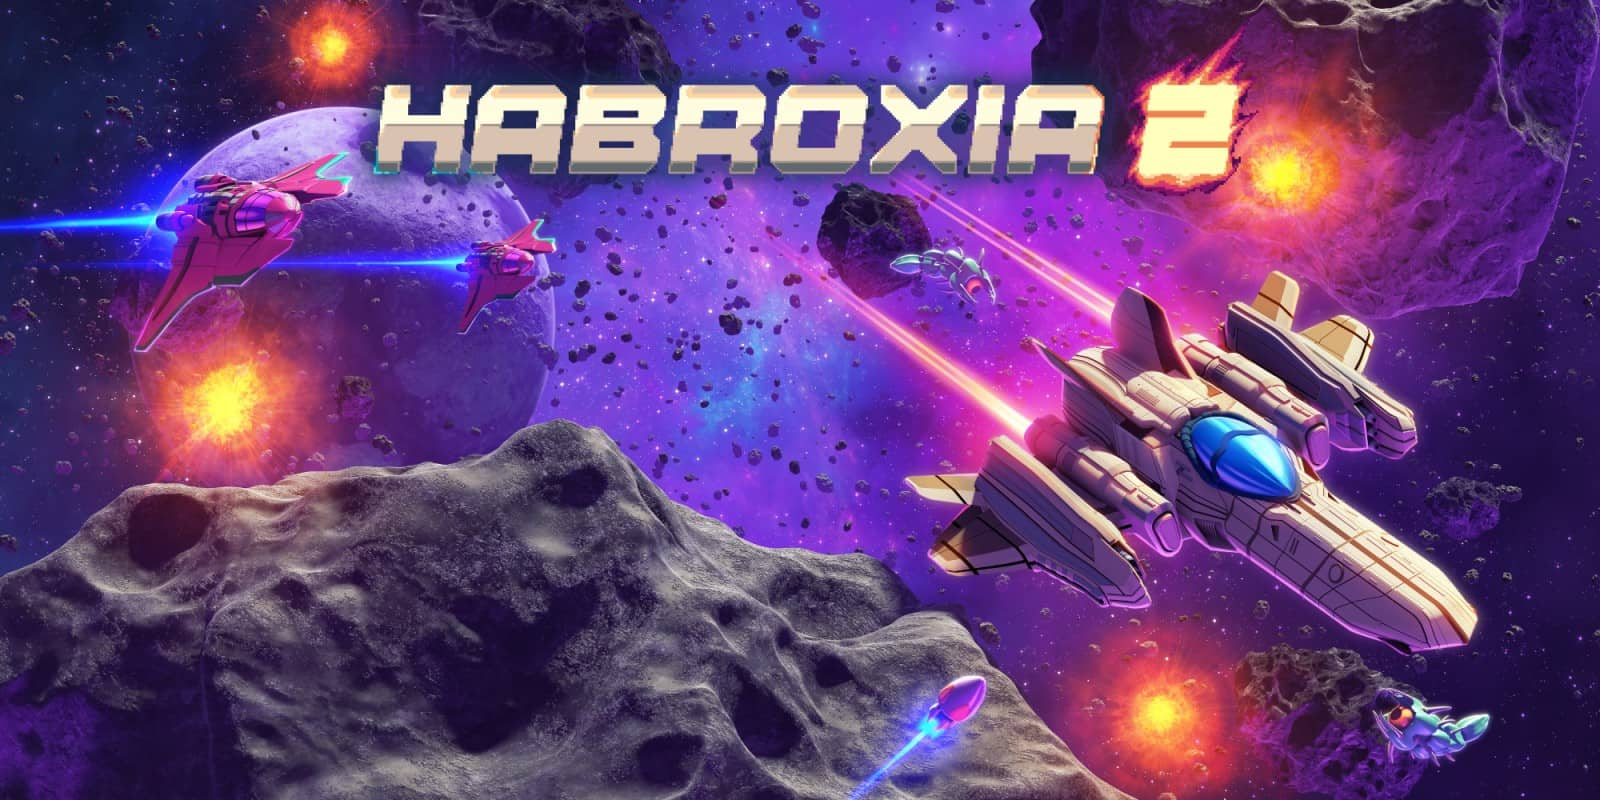 Review: Habroxia 2